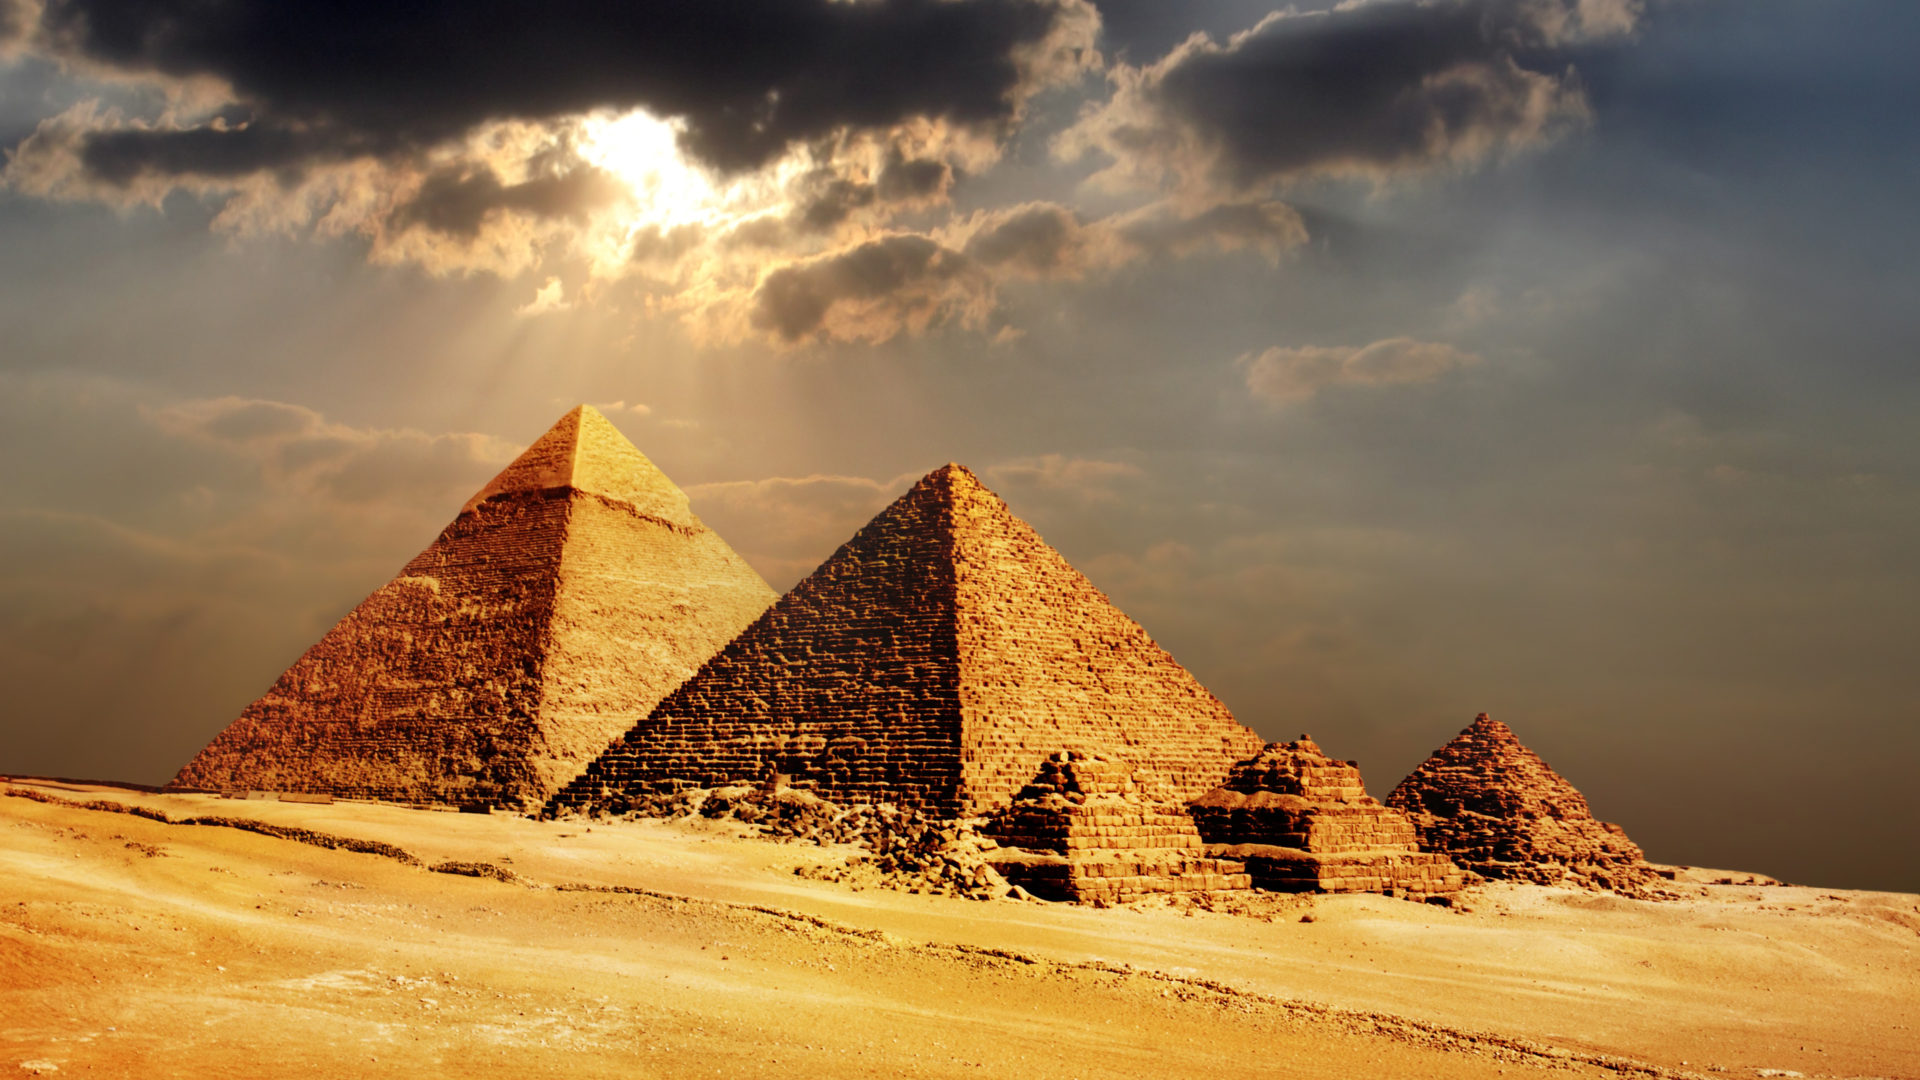 Egypt Pyramids Hd Wallpapers Secrets Of The Pyramids In Giza Cairo Egypt Africa